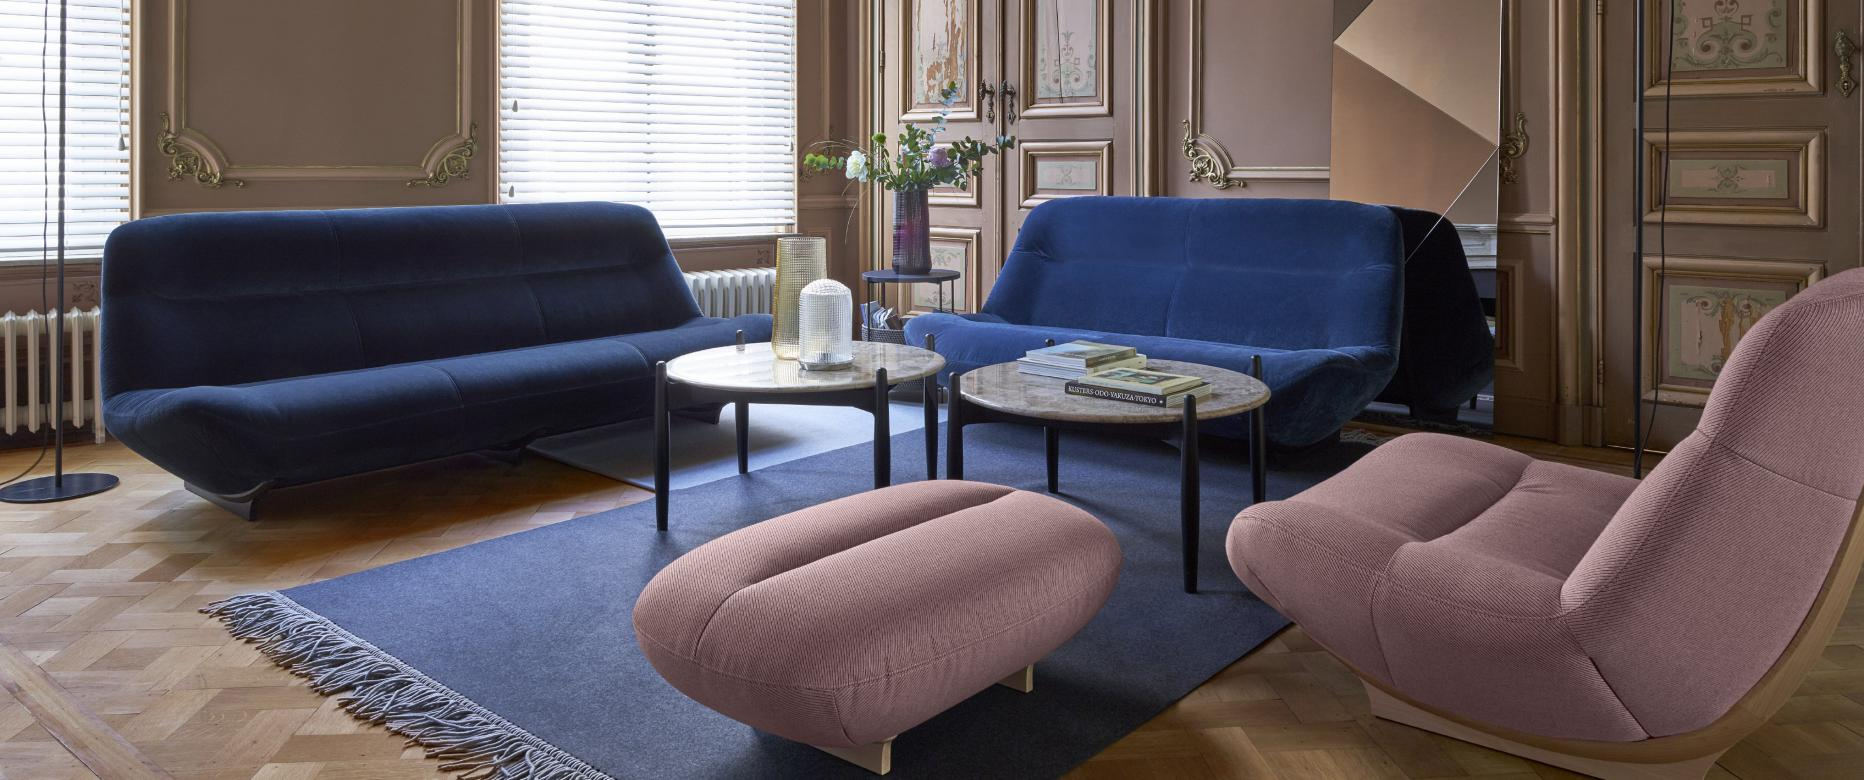 Ligne Roset Official Site Contemporary HighEnd Furniture